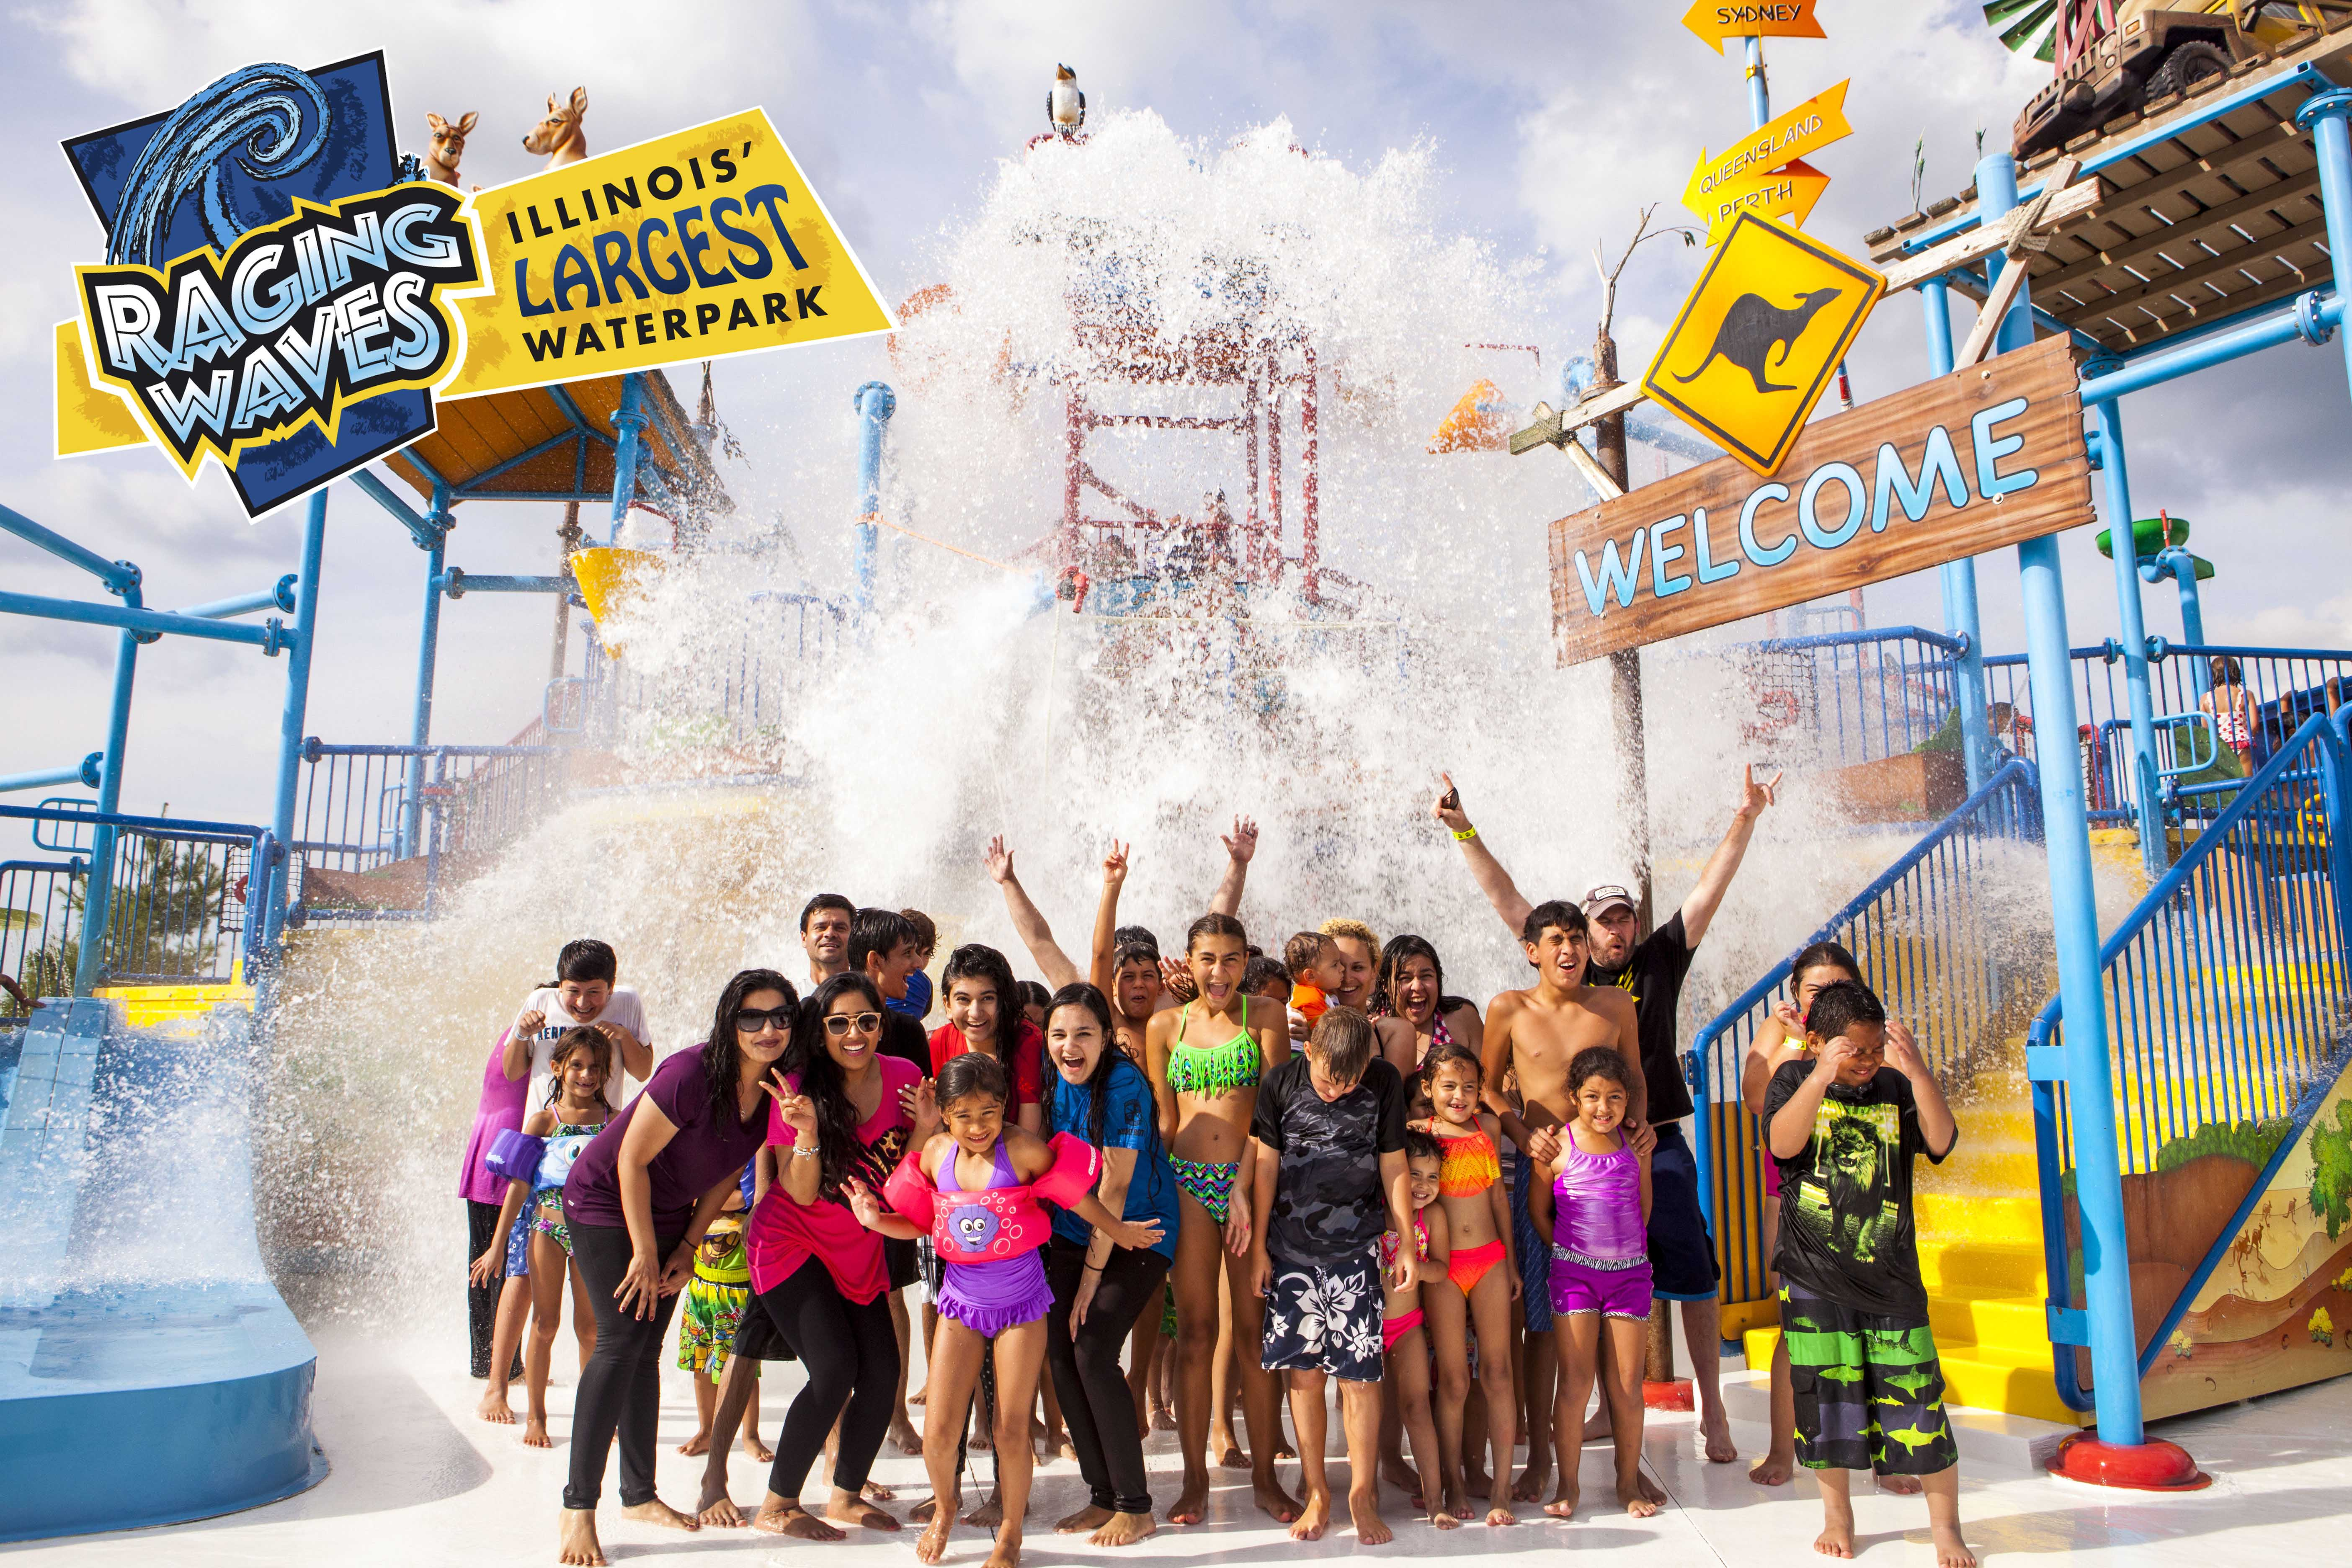 Raging Waves Illinois Largest Waterpark - Map of us water parks